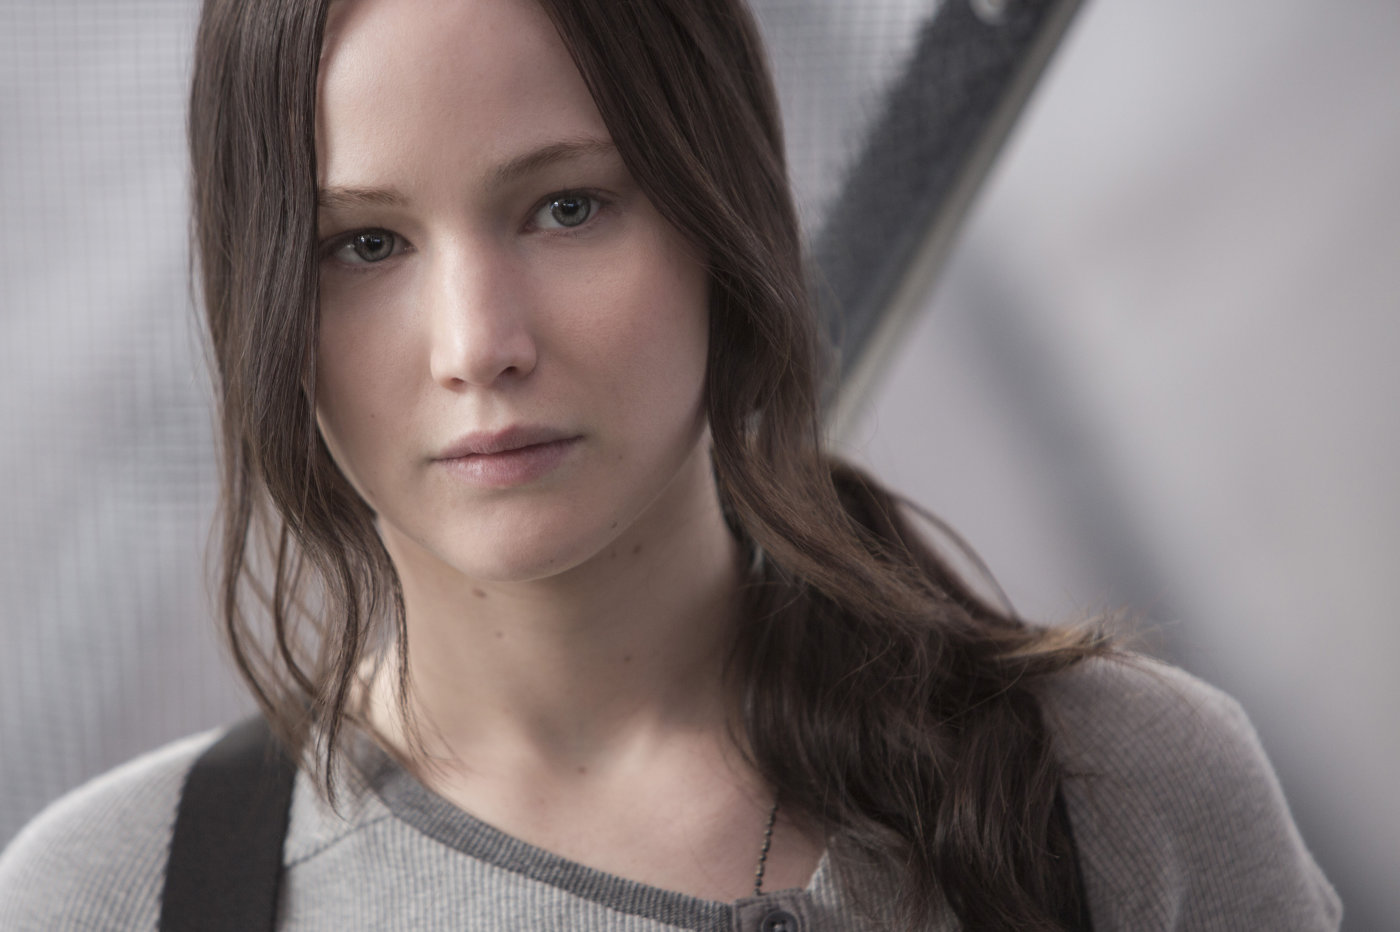 The Hunger Games: Mockingjay - Part 2 is a tale of how worldly political power uses both propaganda and rituals of violence to control a fractious populace, writes C.S. Morrissey. (Photo: Lionsgate)